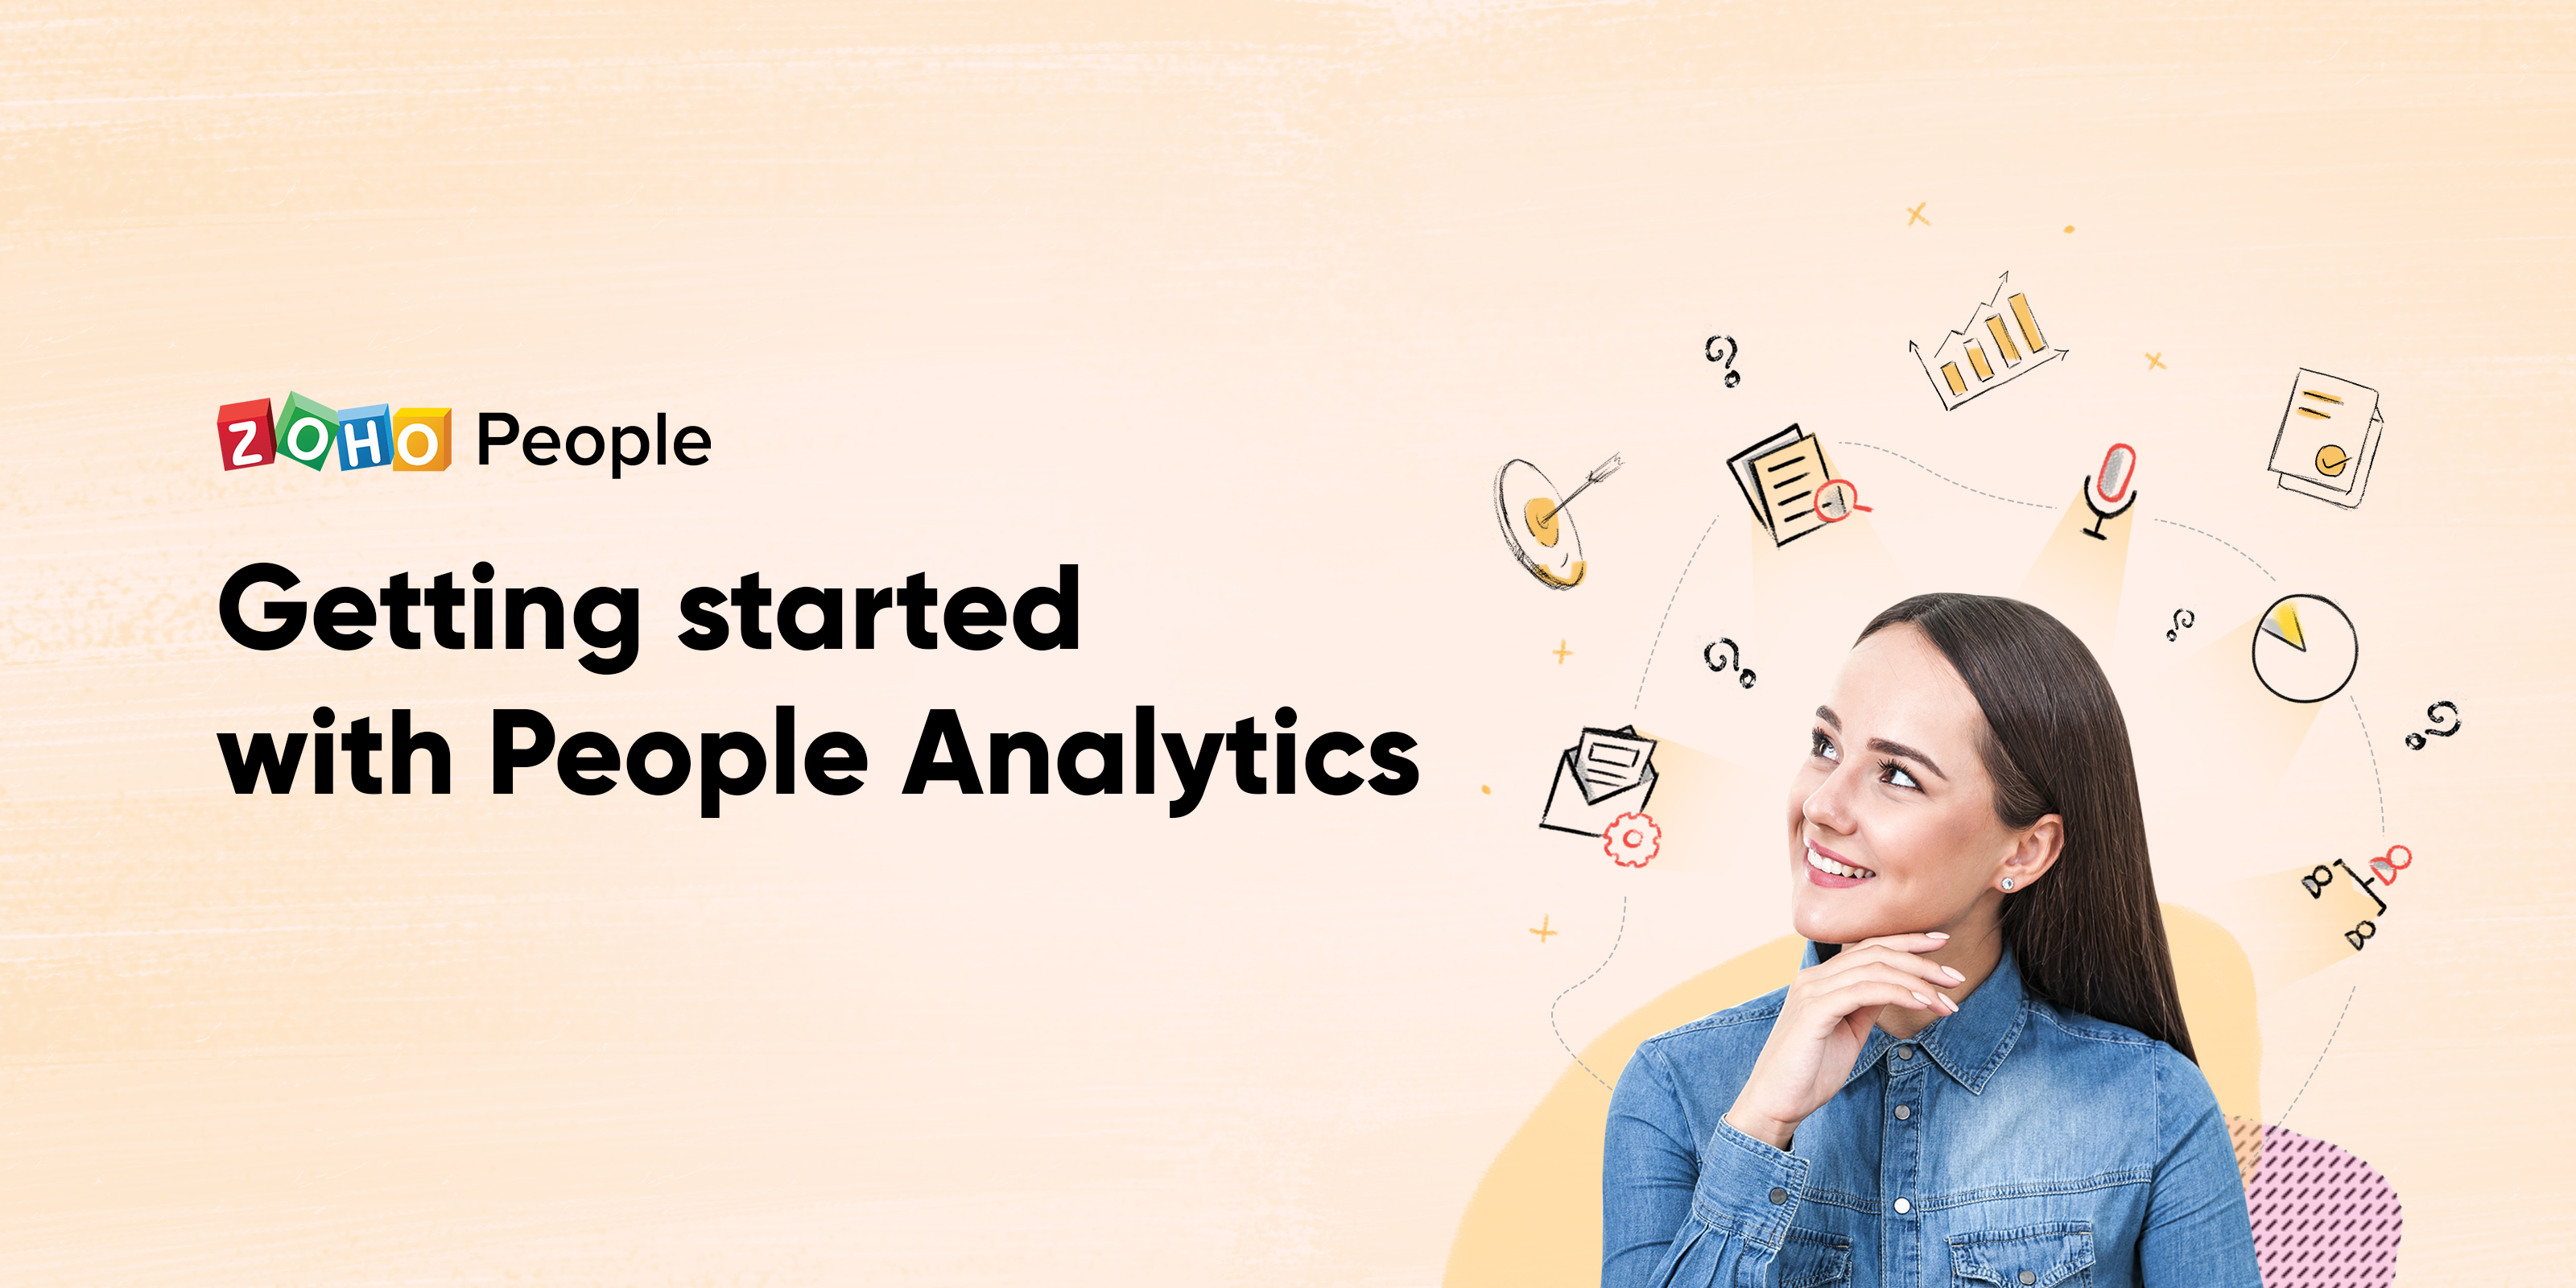 5 tips to start with people analytics